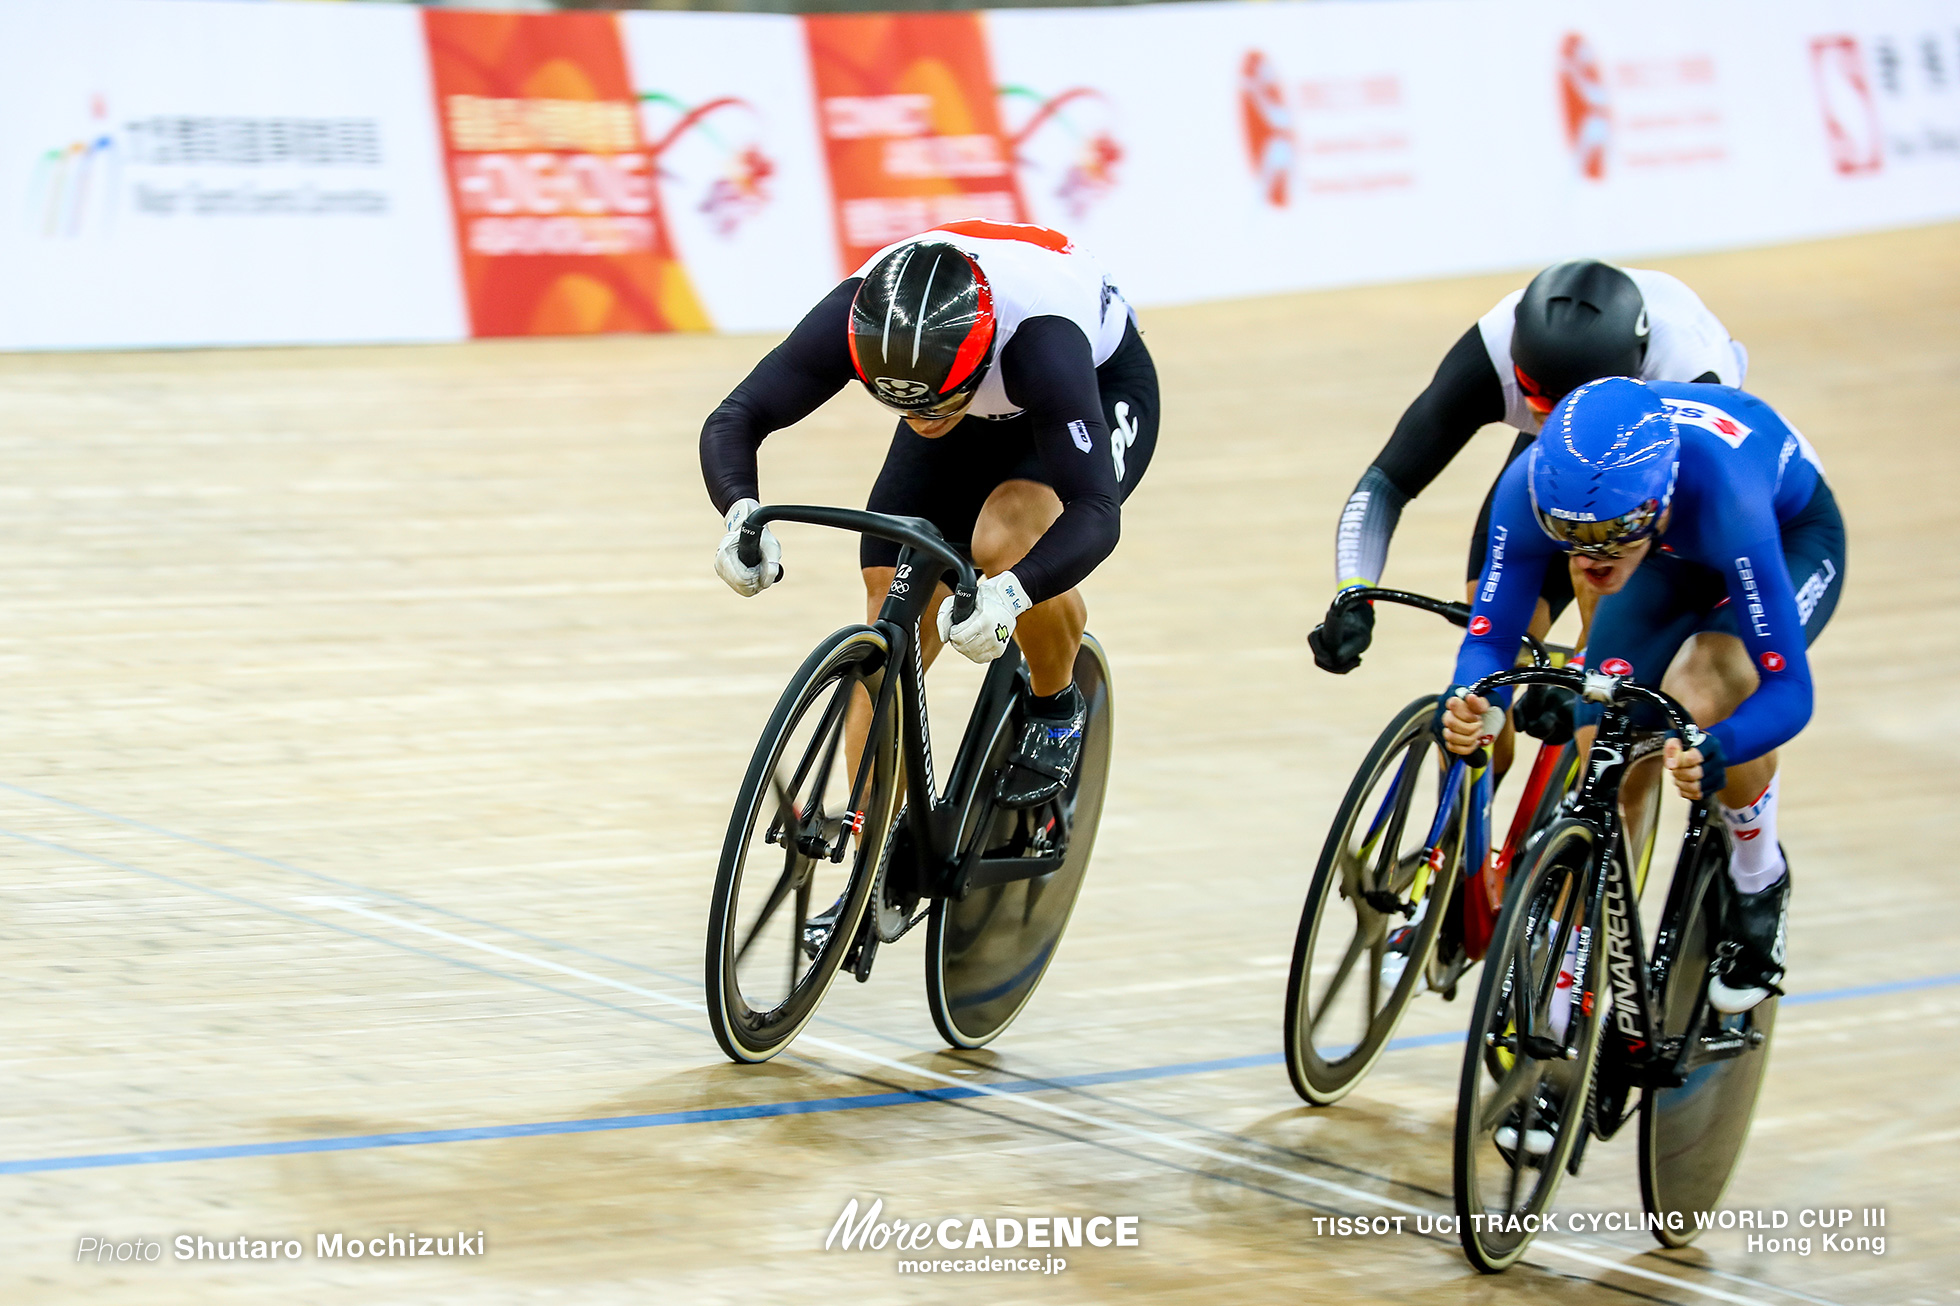 1st Round Repechage / Men's Keirin / TISSOT UCI TRACK CYCLING WORLD CUP III, Hong Kong